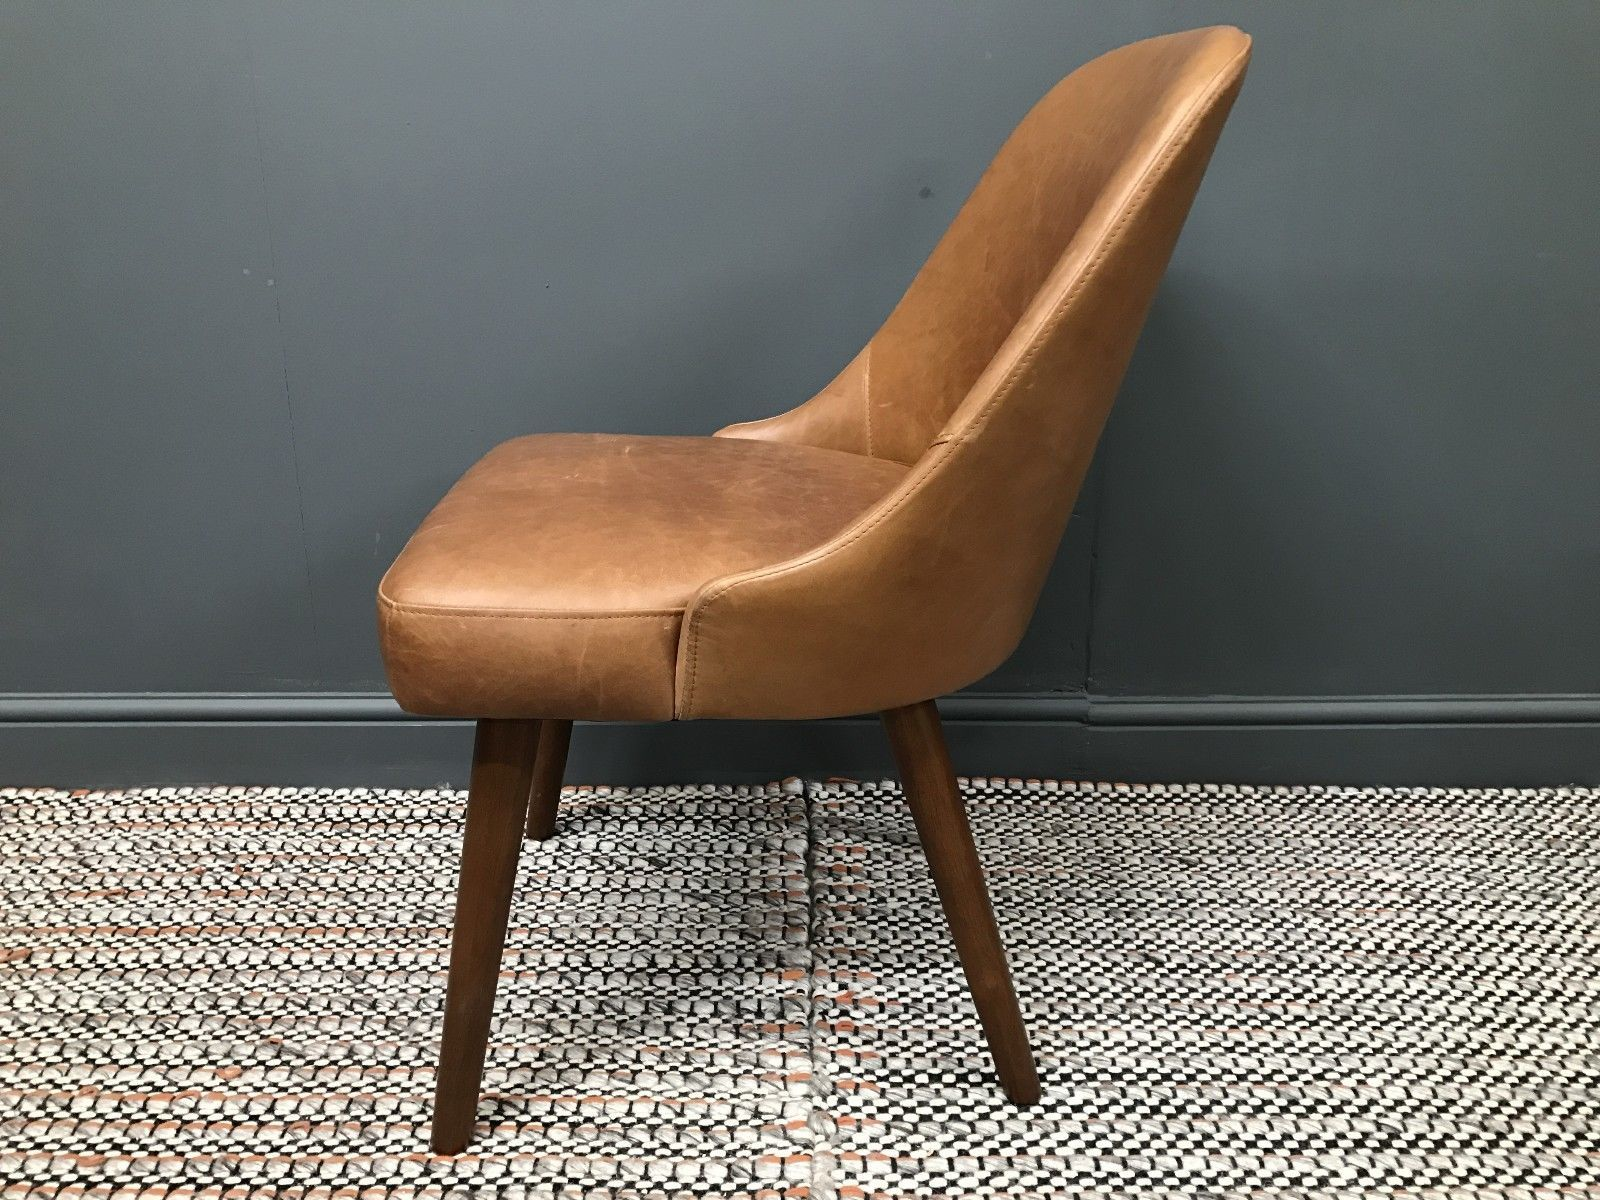 Details about midcentury chair in saddle leather by west